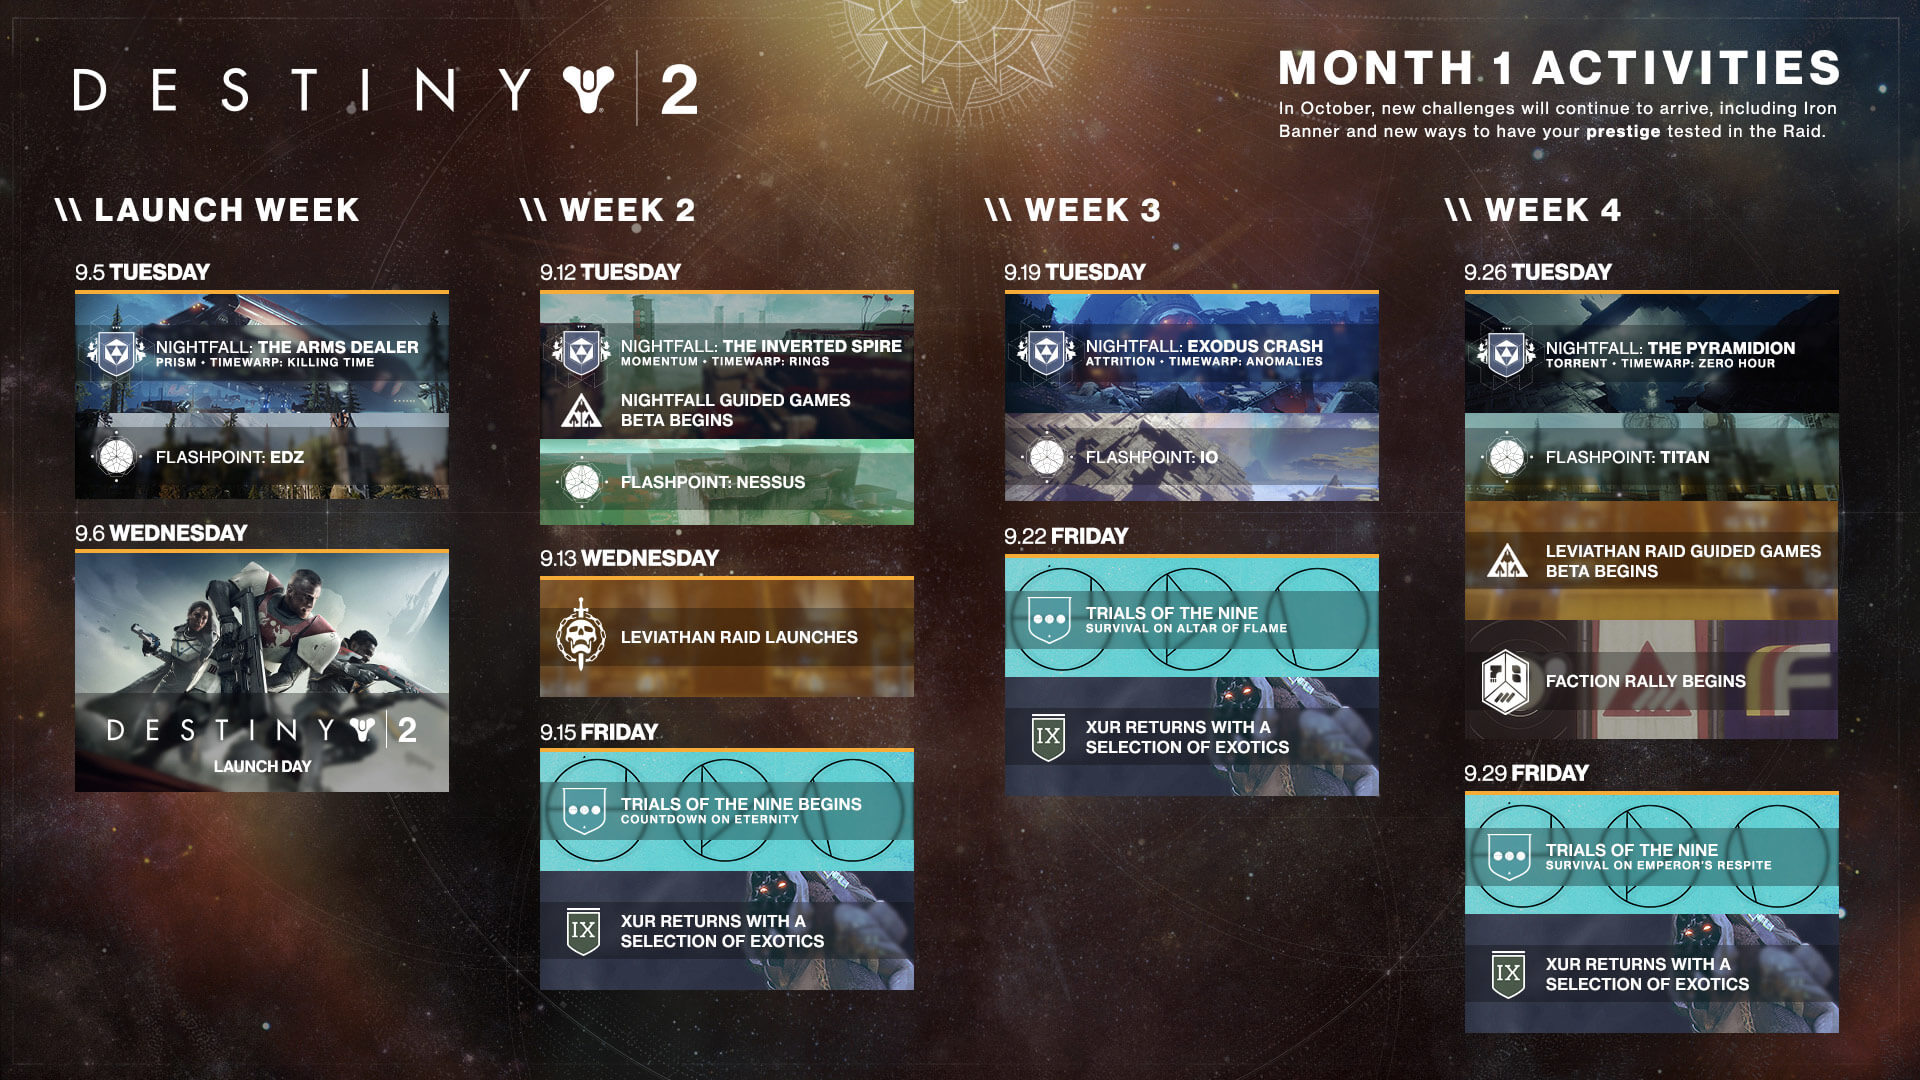 The Full List of First Month Activities Taking Place in Destiny 2